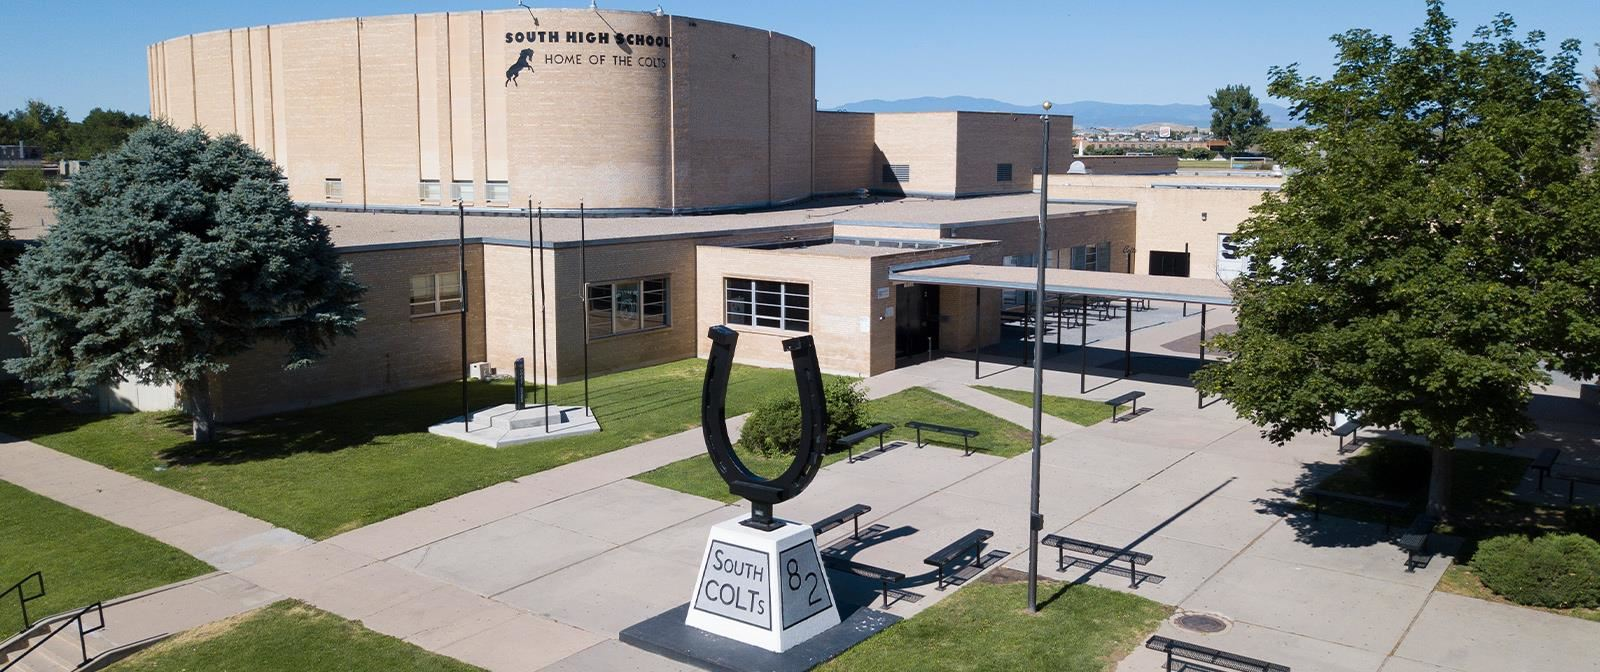 Drone aerial  image showing the front of South High School in Pueblo, Colorado